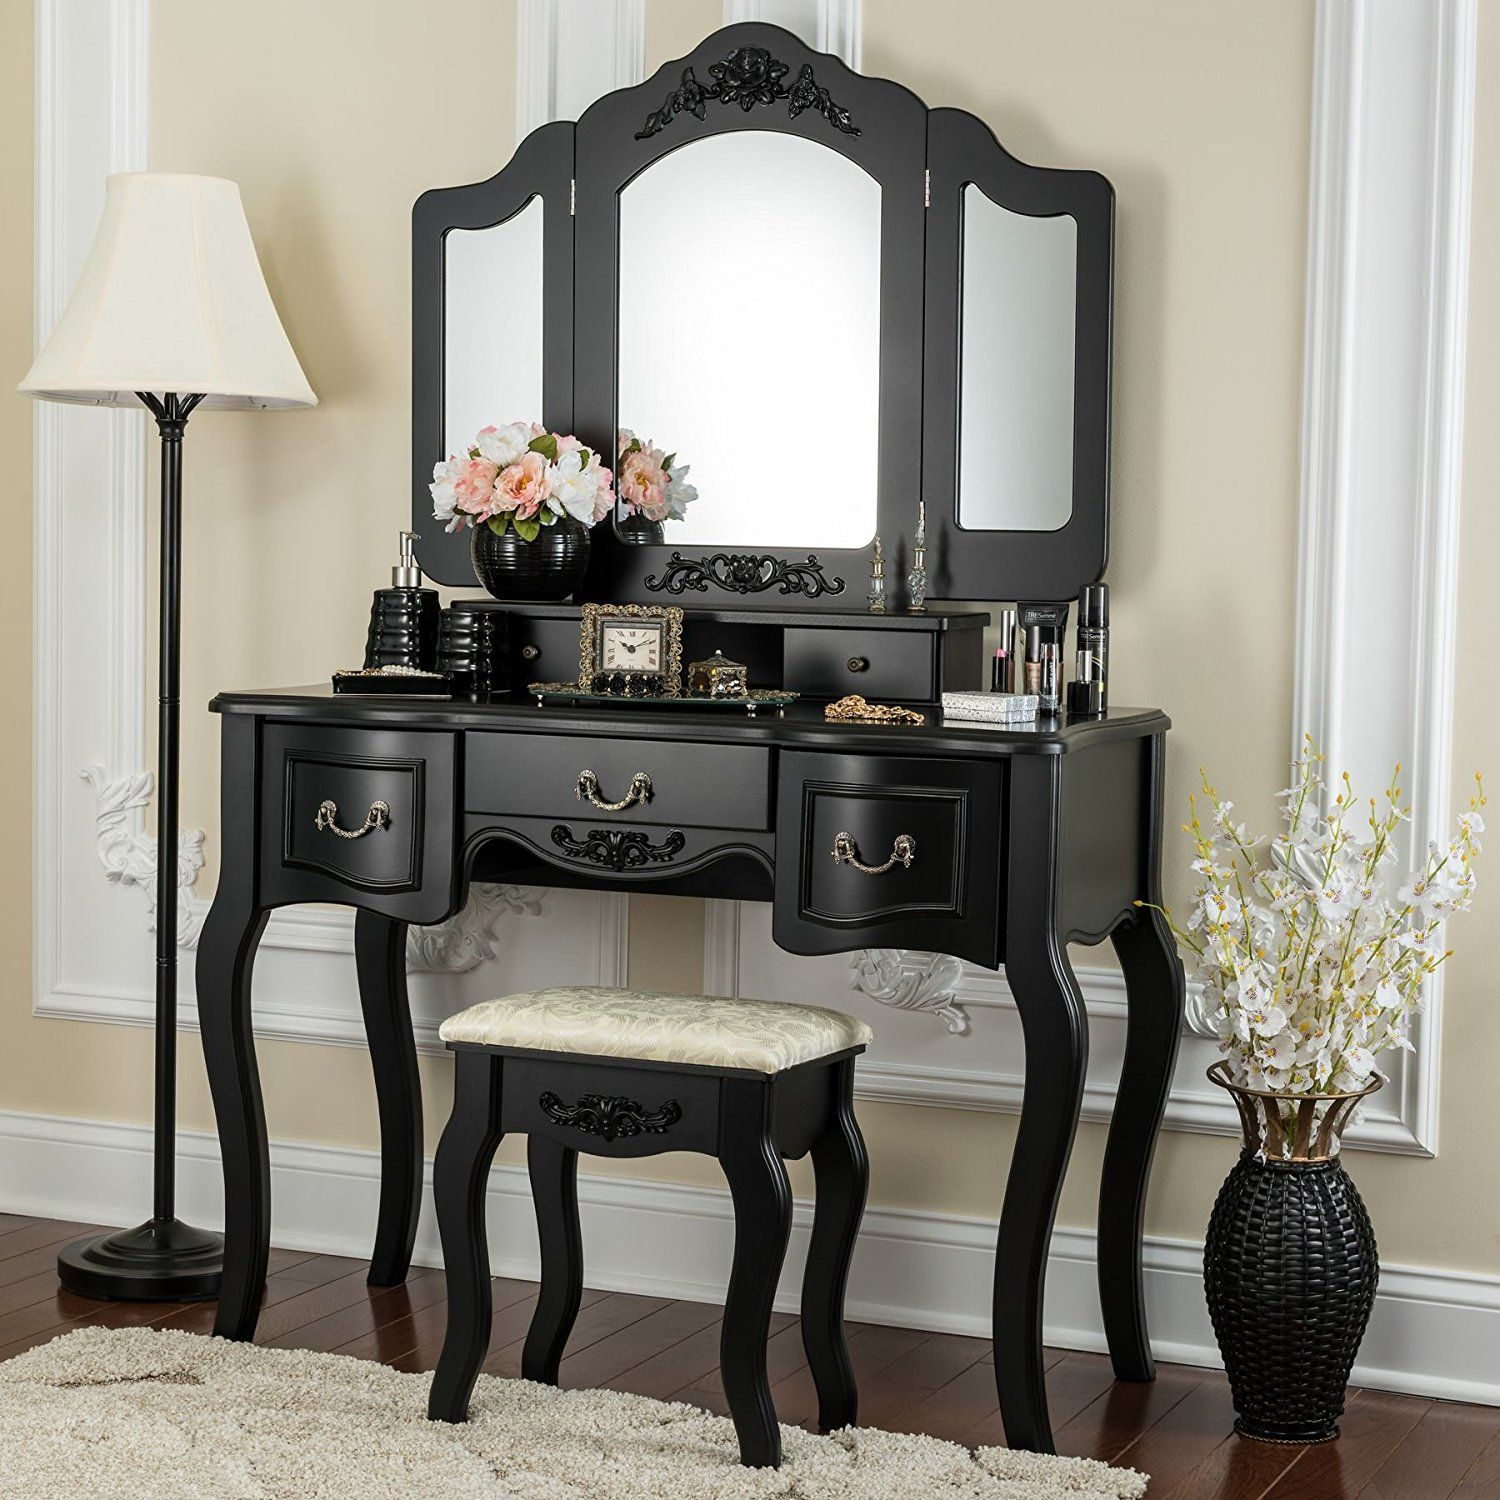 Fineboard Beauty Station Makeup Table and